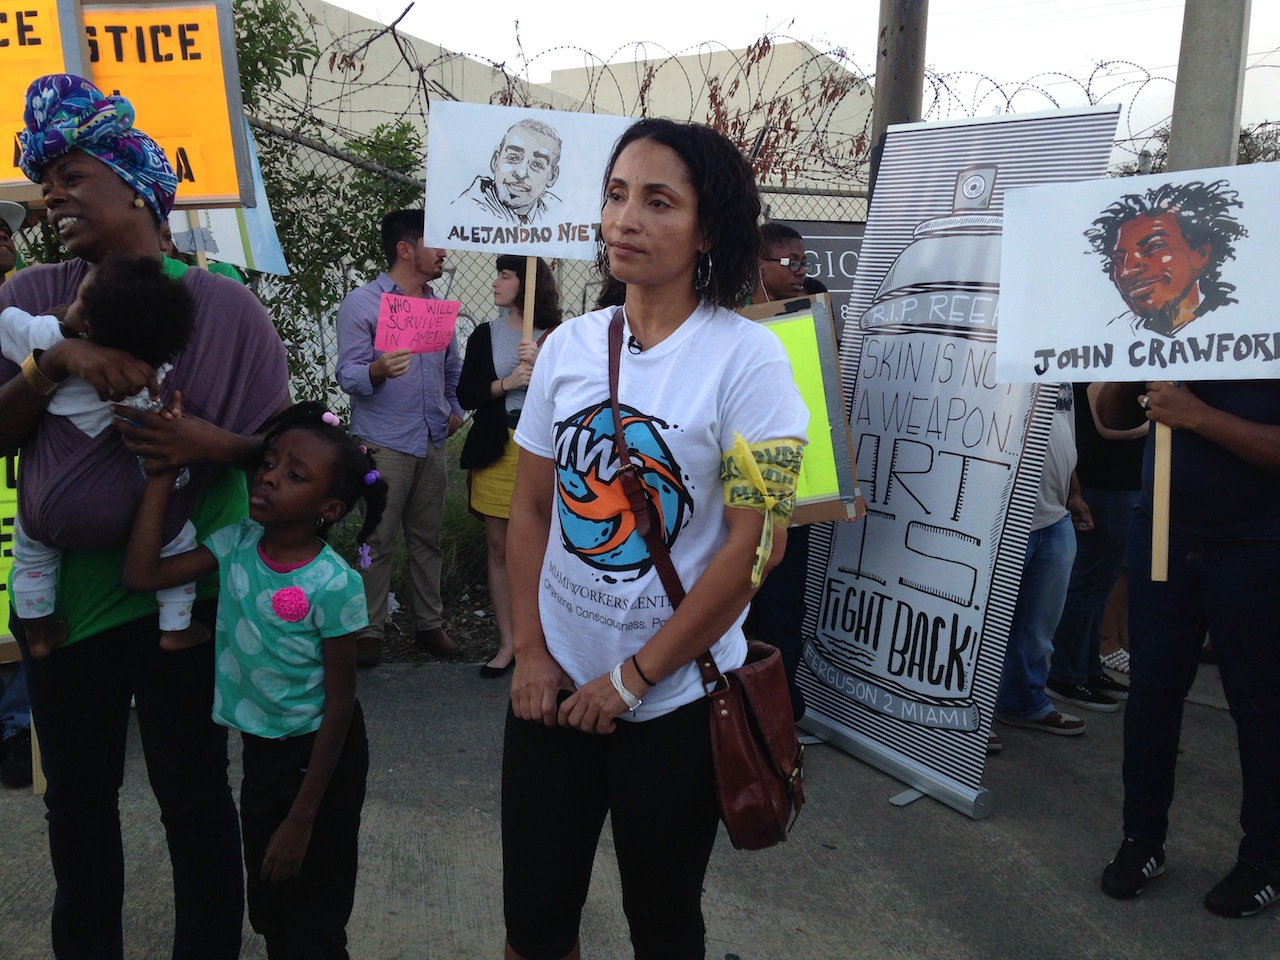 At the protest, with Ruth Noel Jean standing on the far left and protest art by Molly Crabapple and Damon Davis in the background